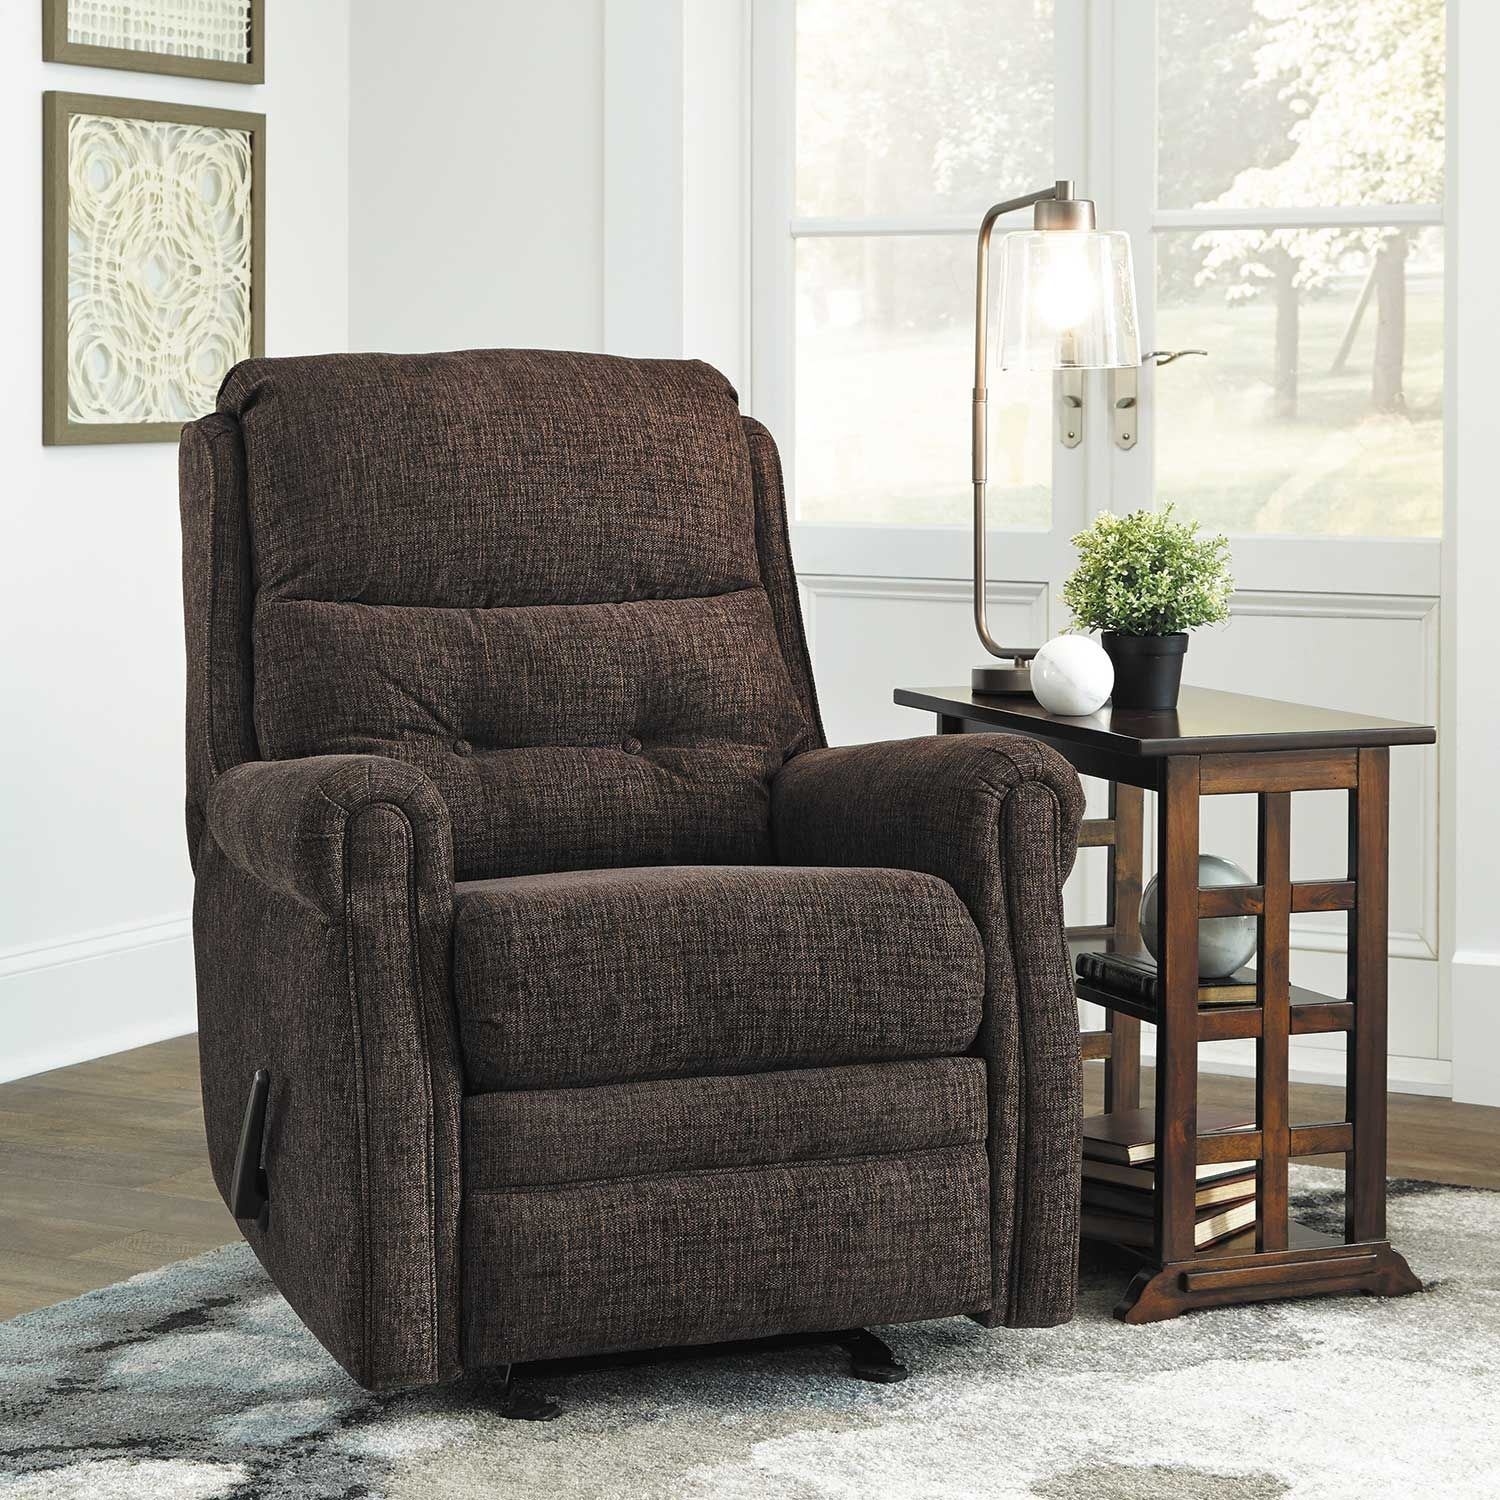 Picture of Penzberg Brown Glider Recliner